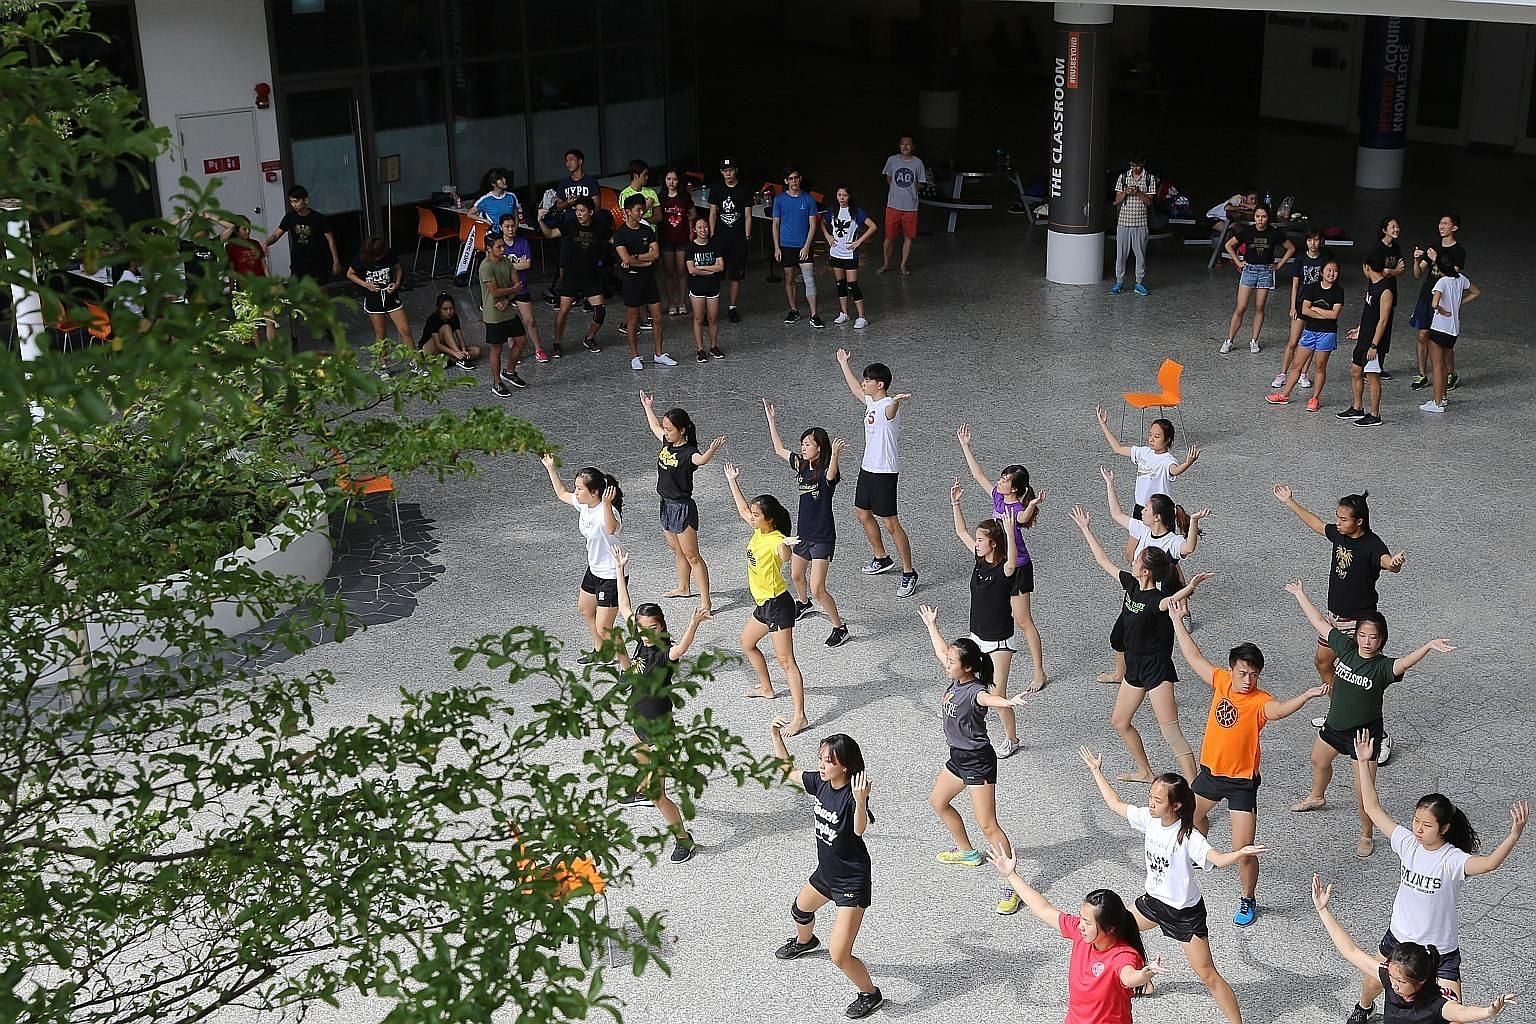 Above: NTU freshmen playing orientation games on Sentosa in 2016. Left: Students practising dance moves in 2016 for NUS' Rag and Flag day, which is part of the orientation programme.